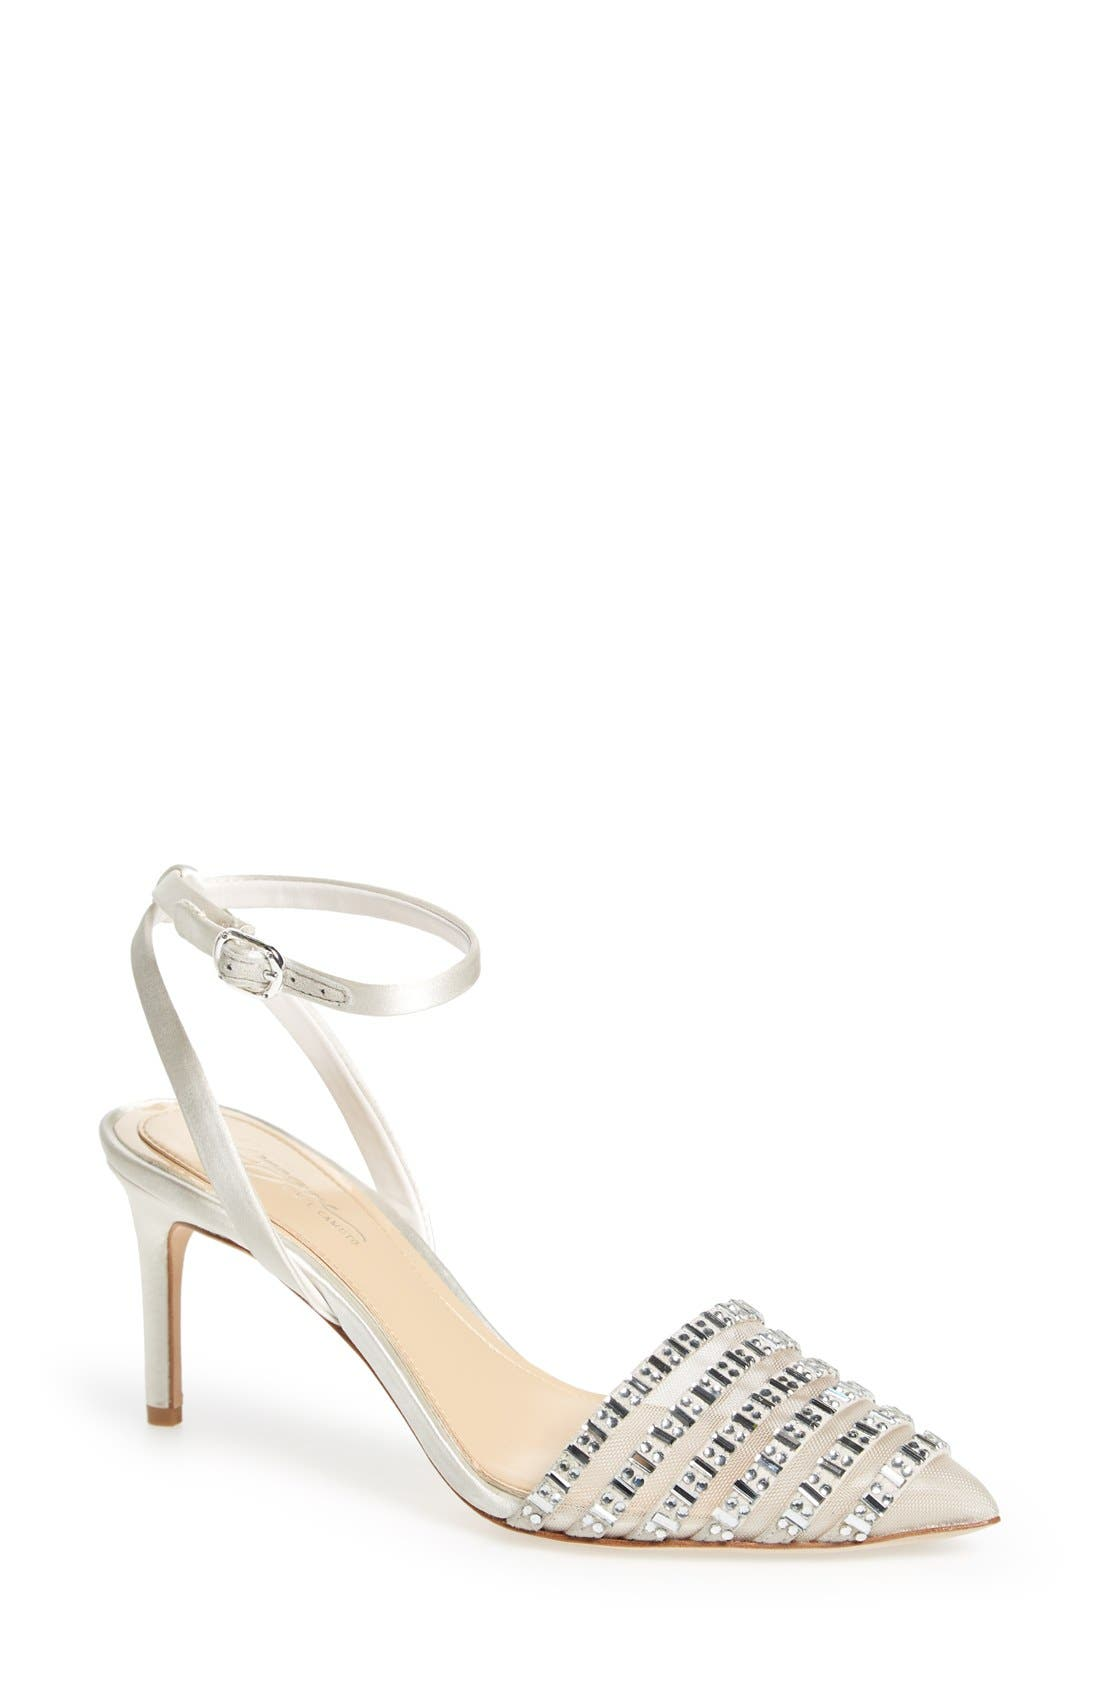 IMAGINE BY VINCE CAMUTO 'Michael' Sandal